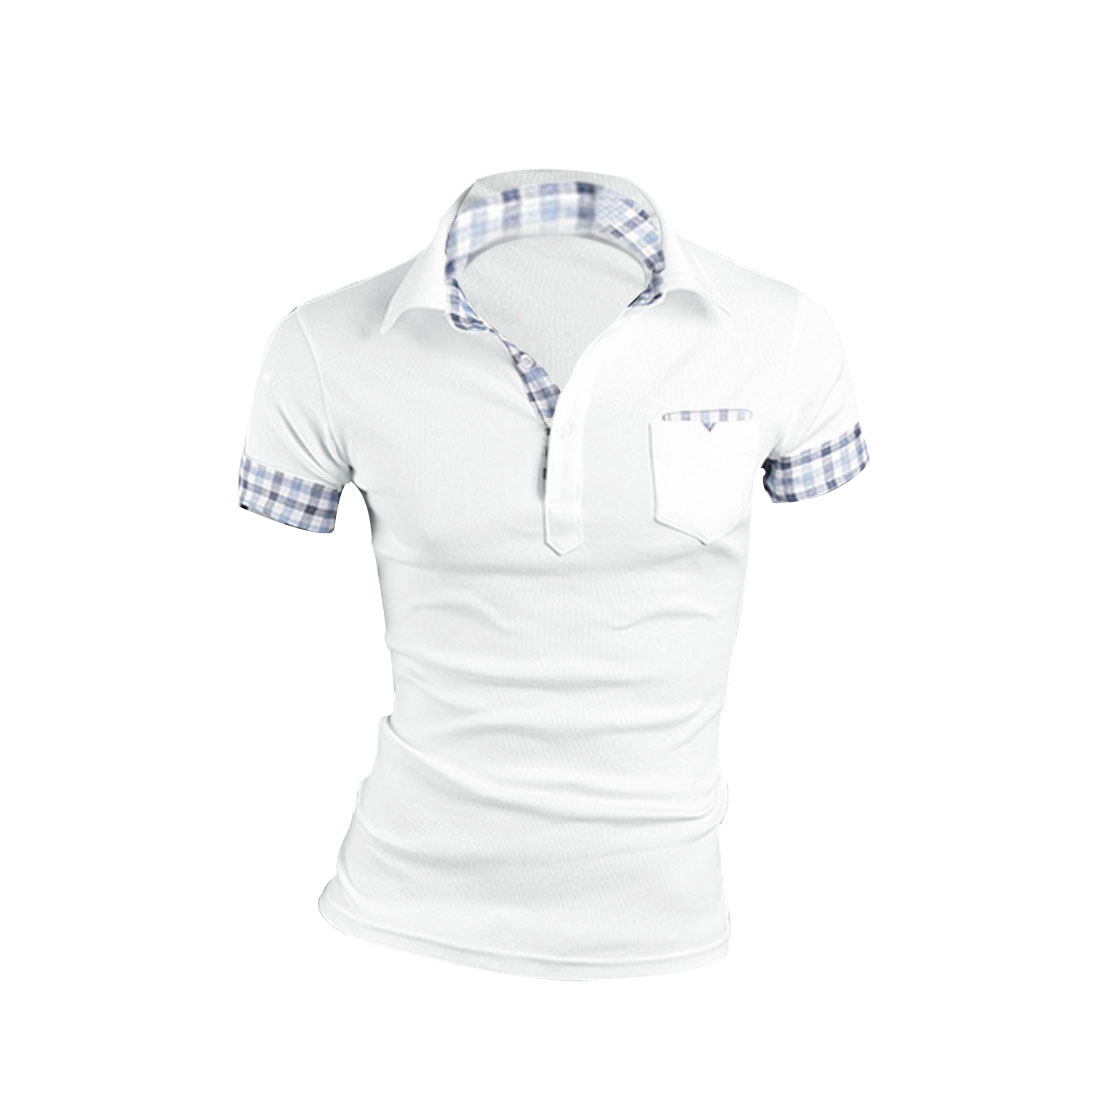 Fashion Mens Point Collar Short Sleeve Button Front Design White Shirt M